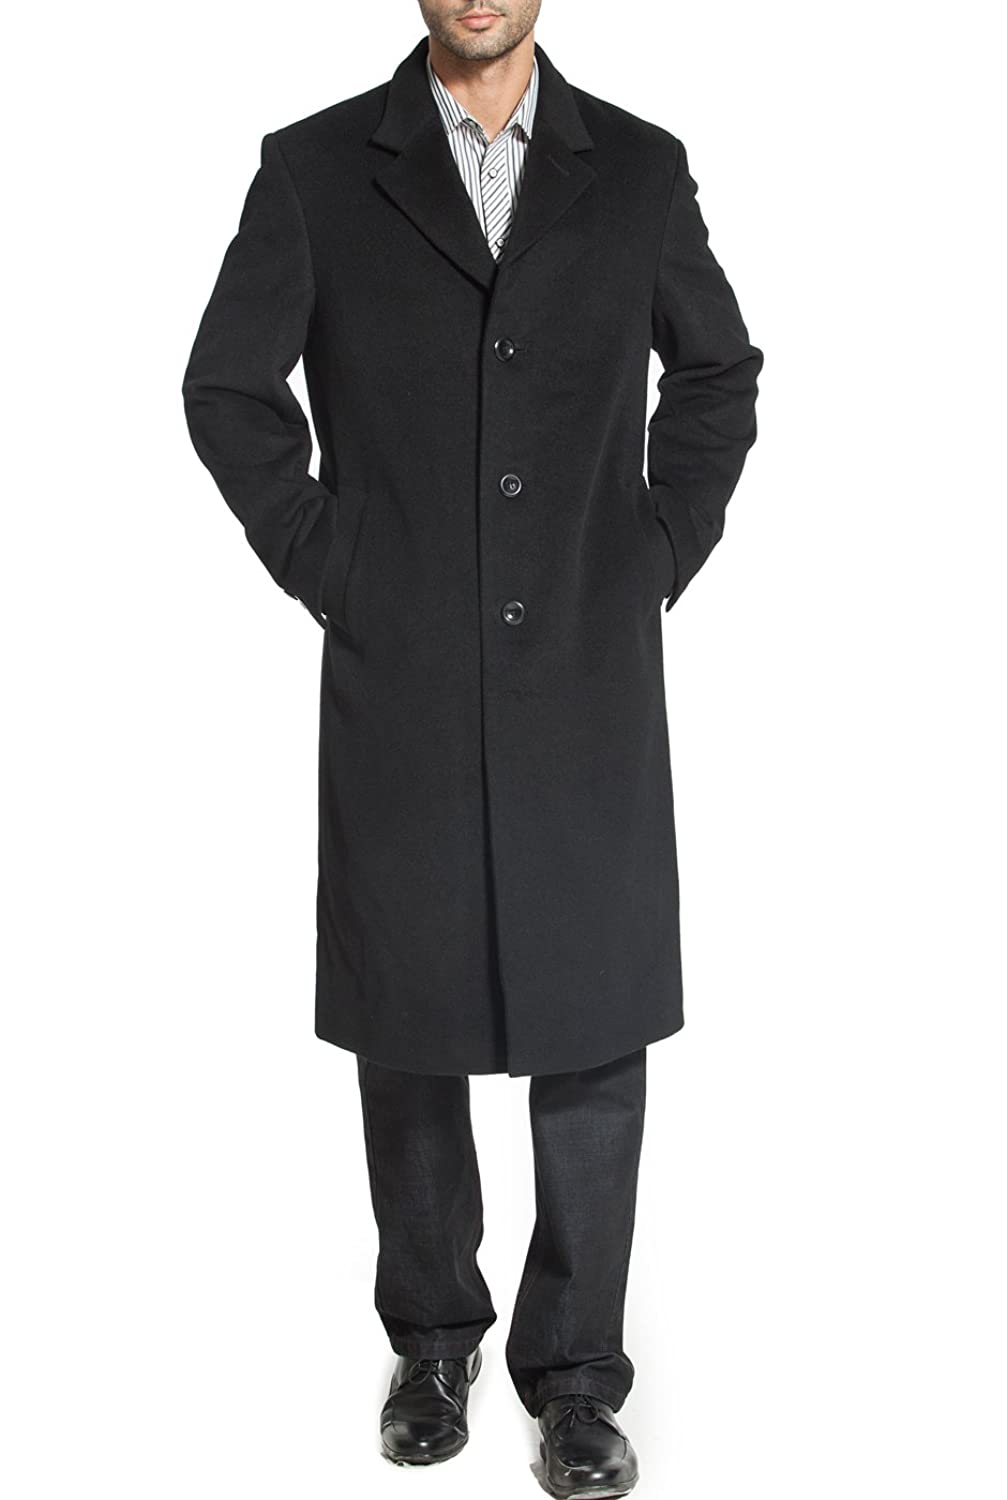 1920s Mens Coats & Jackets History BGSD Mens Henry Cashmere Blend Long Walking Coat (M) $169.99 AT vintagedancer.com